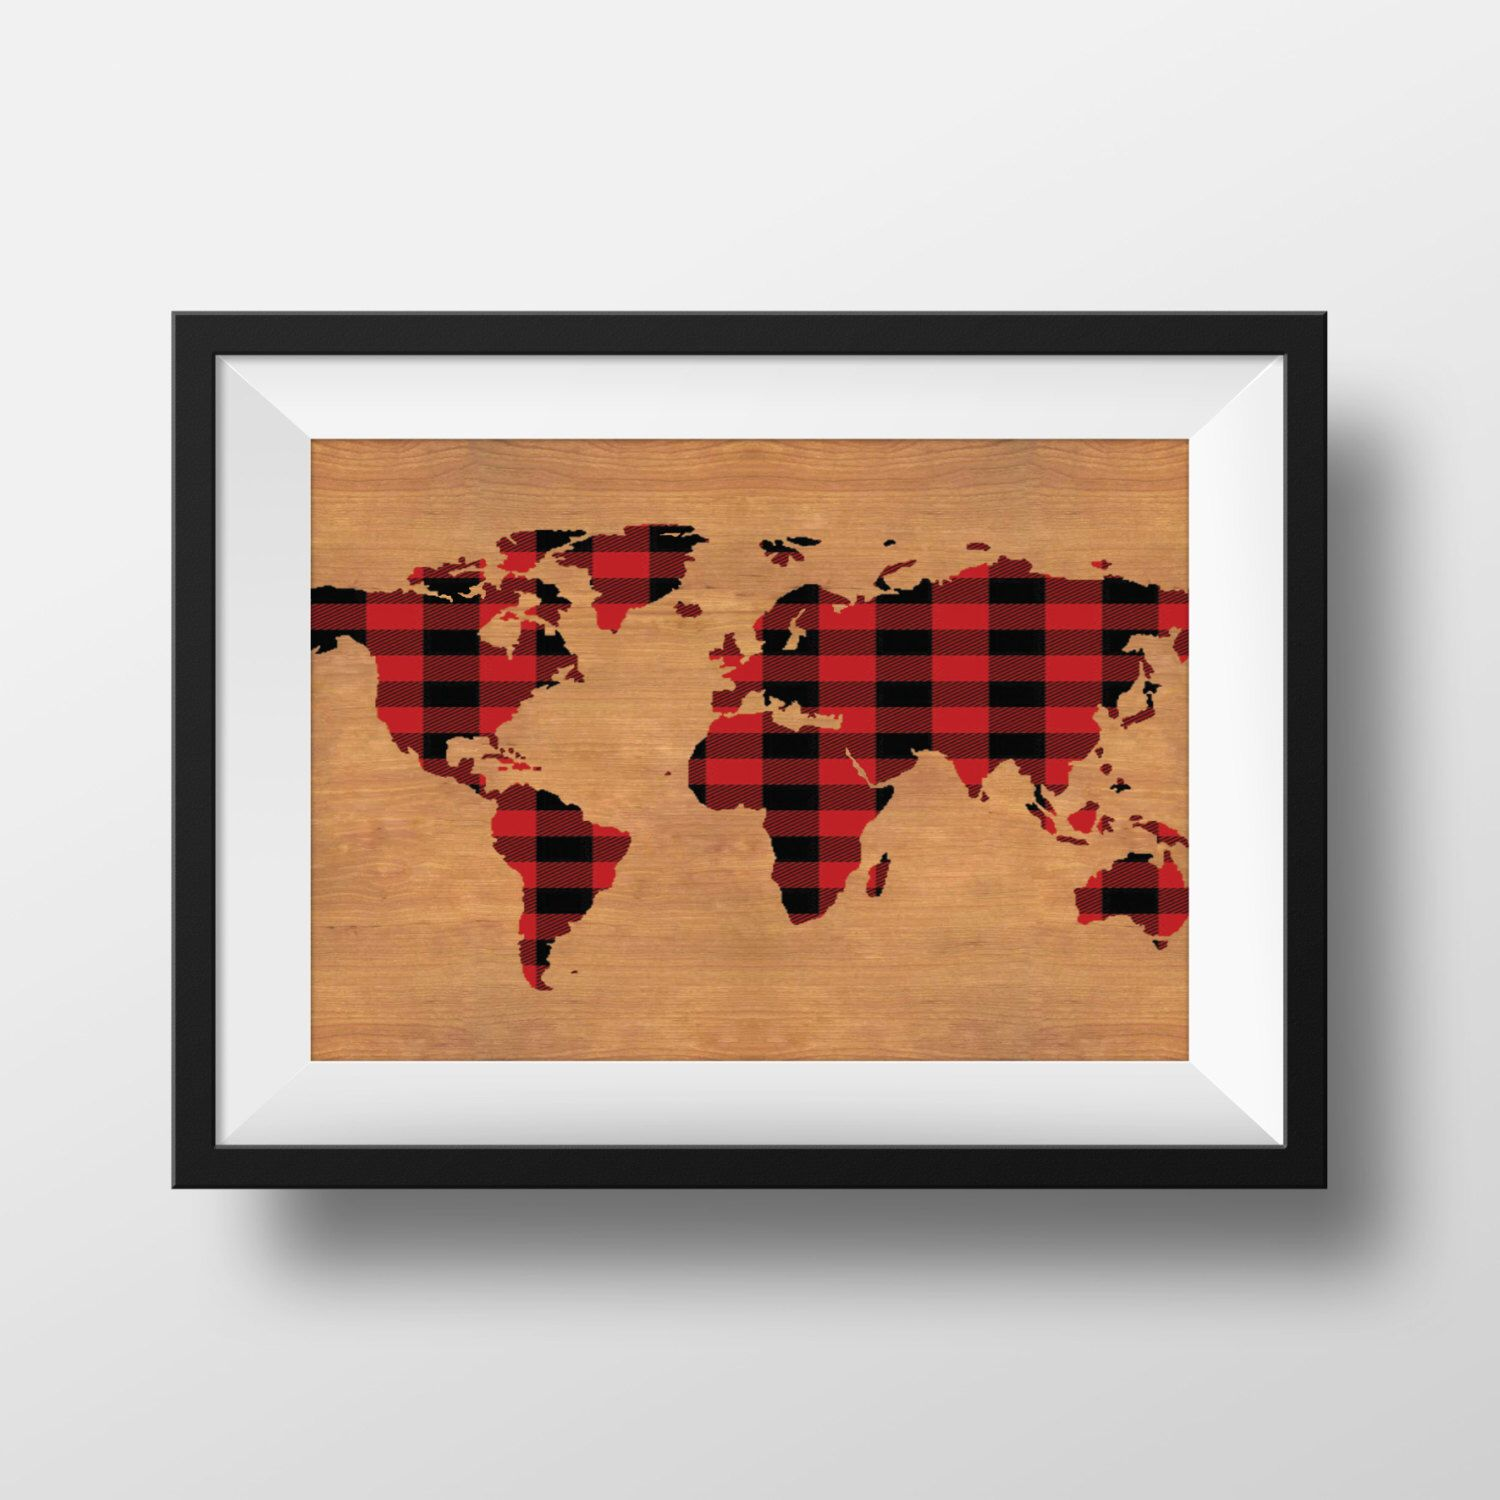 A personal favorite from my etsy shop httpsetsylisting a personal favorite from my etsy shop httpsetsy christmas printablesworld mapsshutterflychristmas gumiabroncs Images